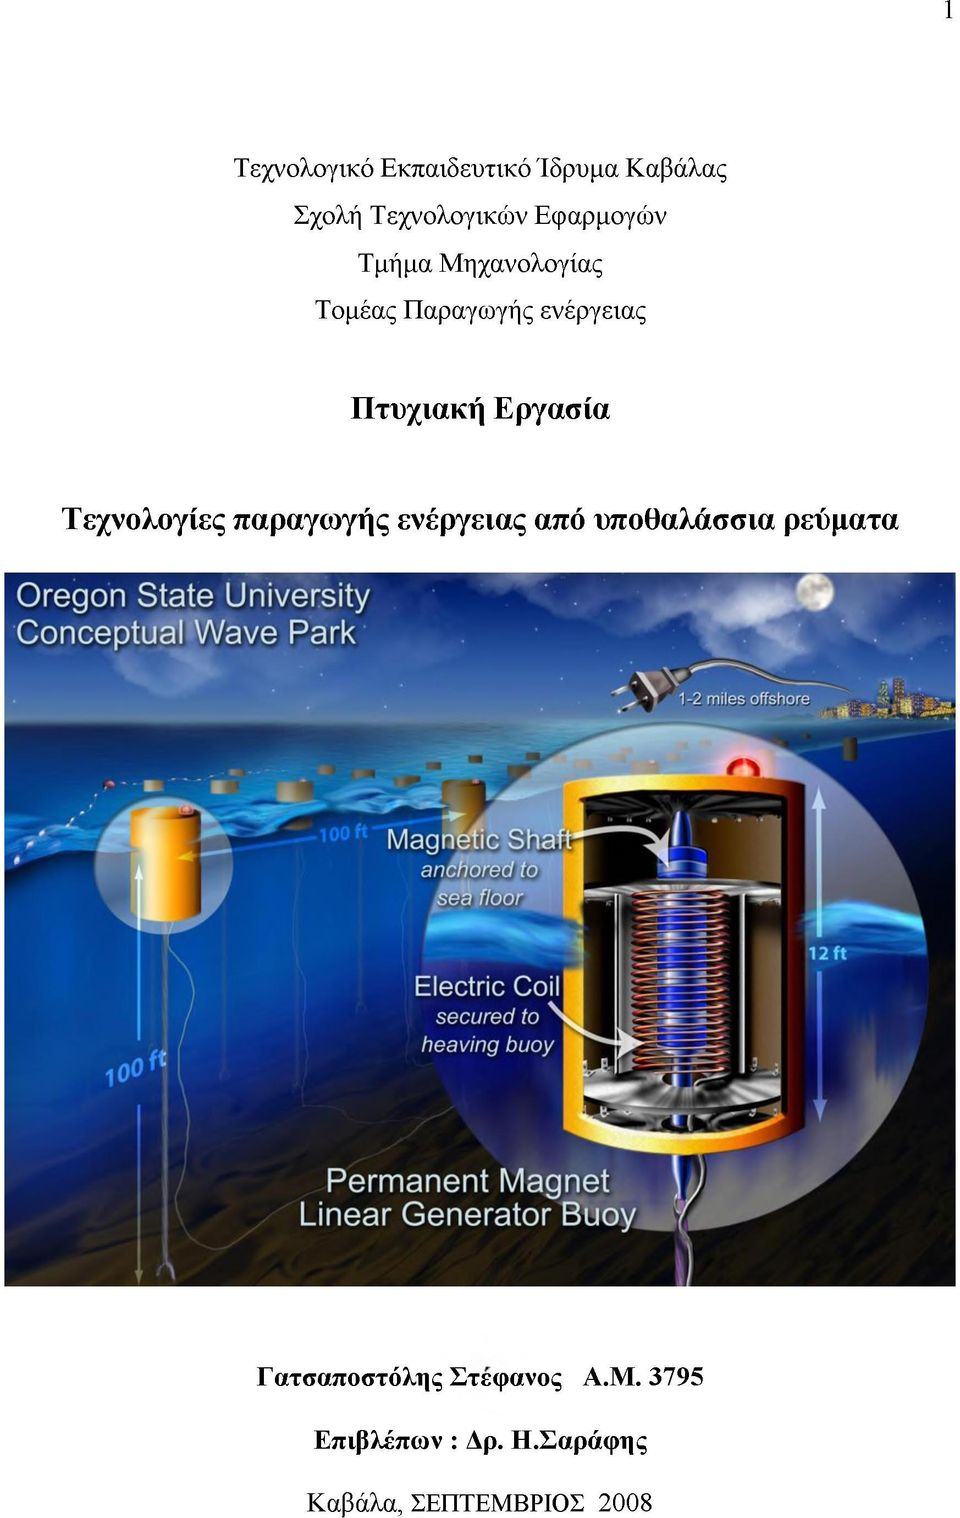 Conceptual Wave Park isi2 miles offshore Magnetic Sha anifiored to se^ floor Electric Coil secured to N heaving buoy I